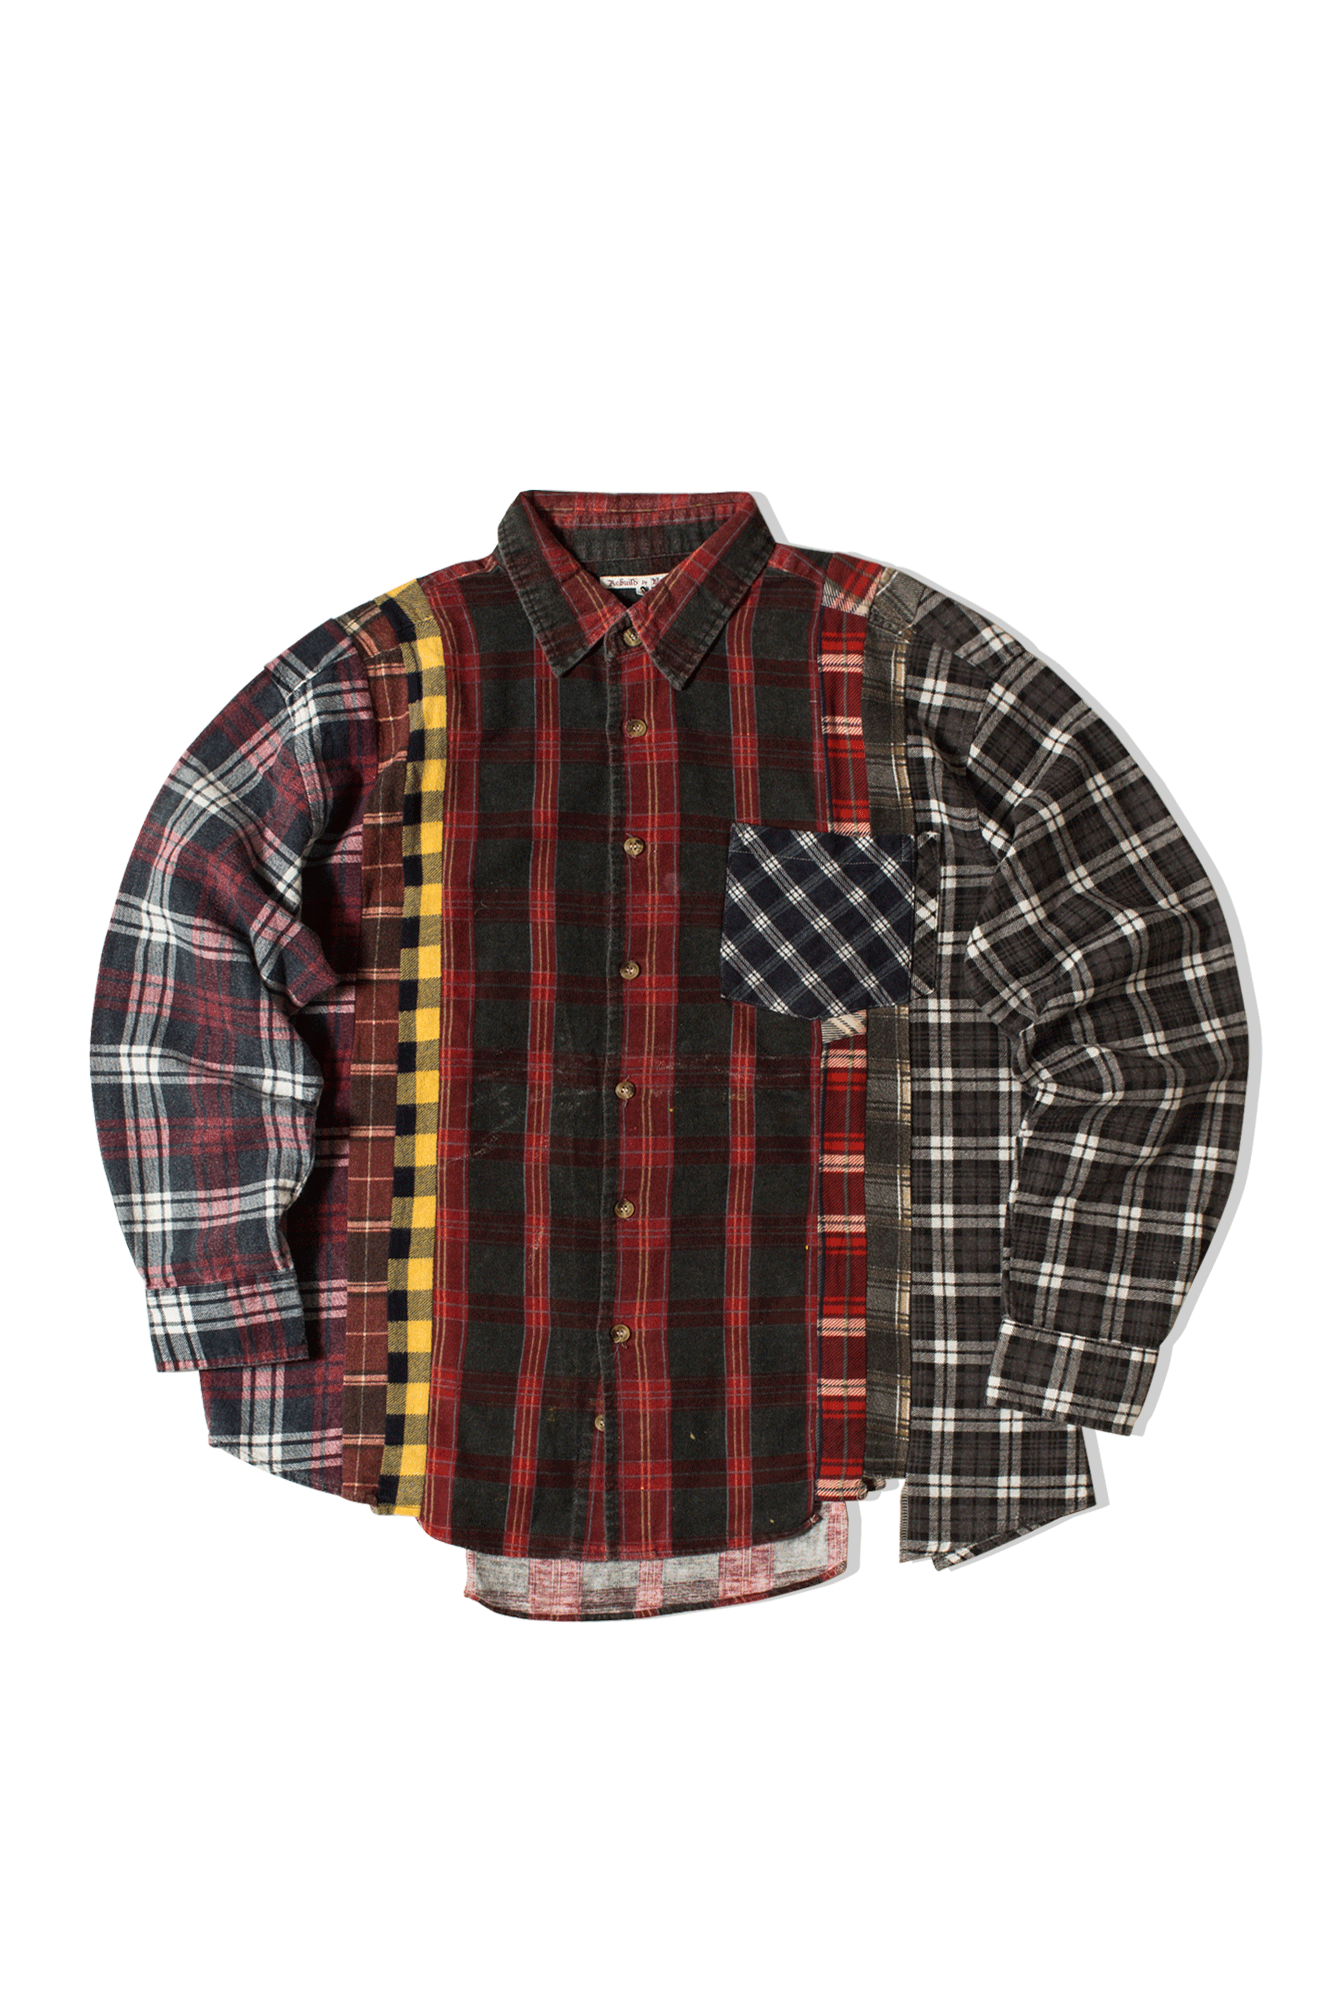 Needles Shirts 7 Cuts Flannel Shirt Multicolor IN240-M#000#MLT#M - One Block Down